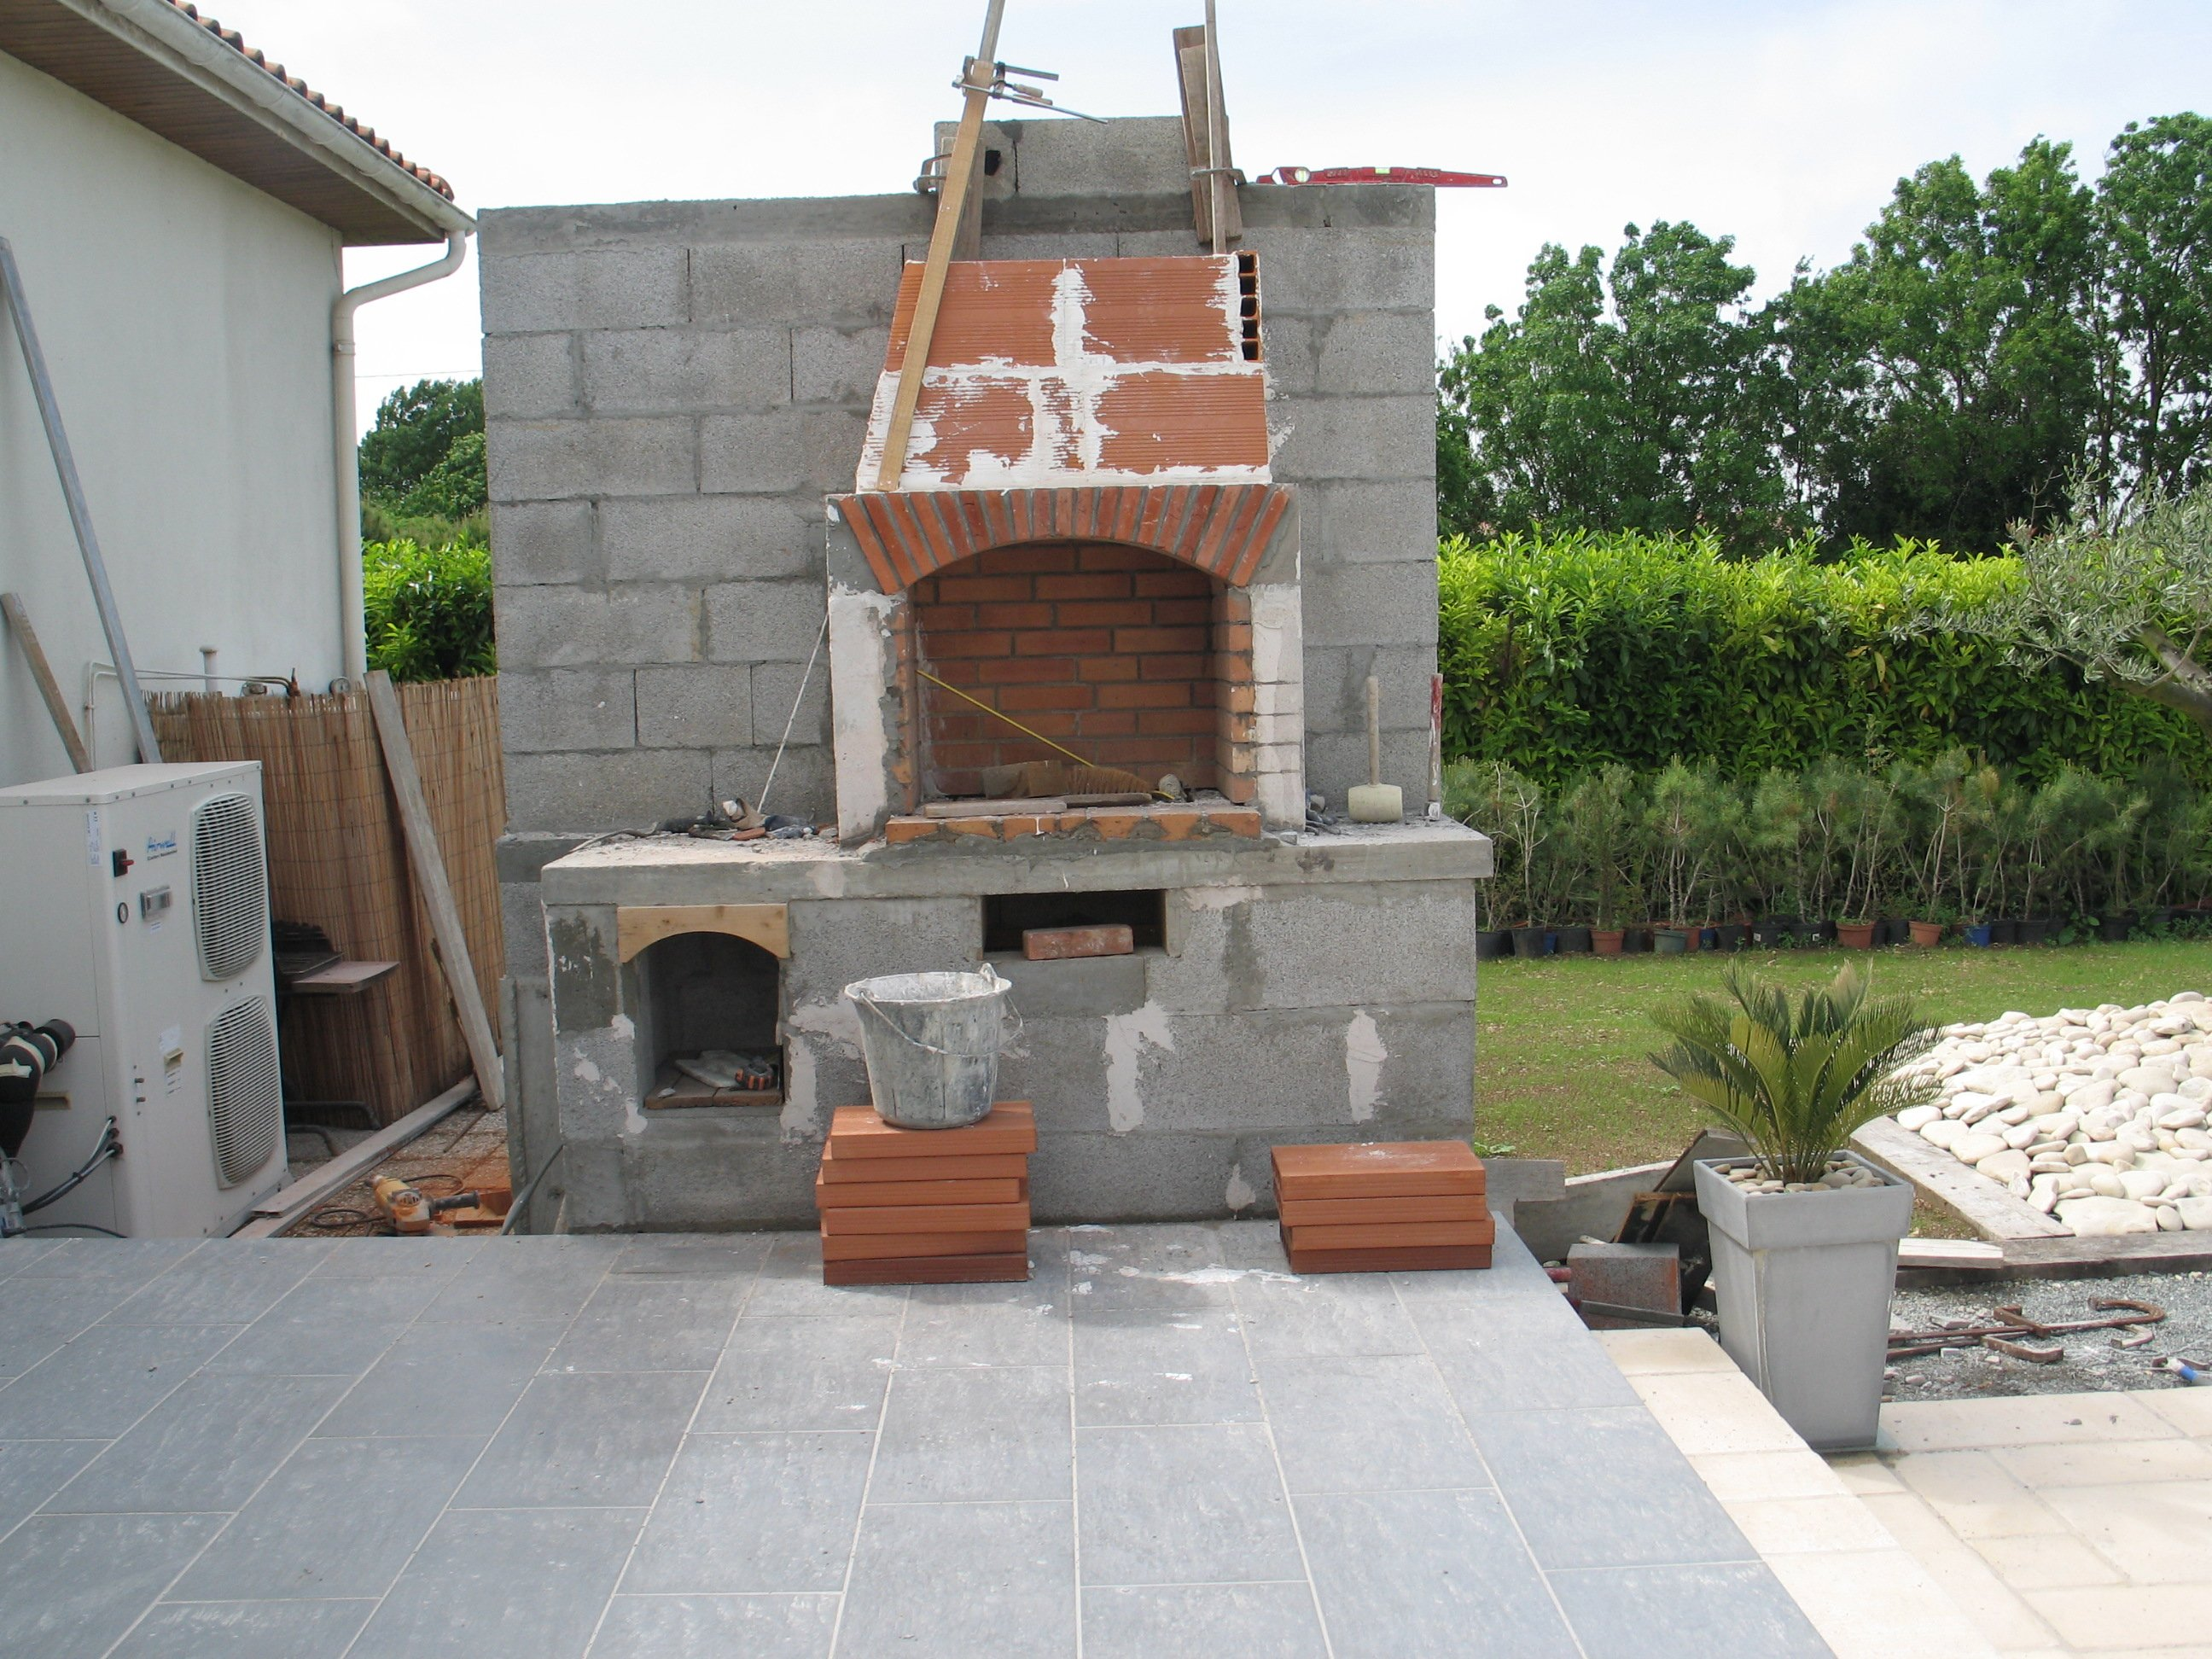 Construire son barbecue archives du blog l avaloir - Faire un barbecue en beton cellulaire ...